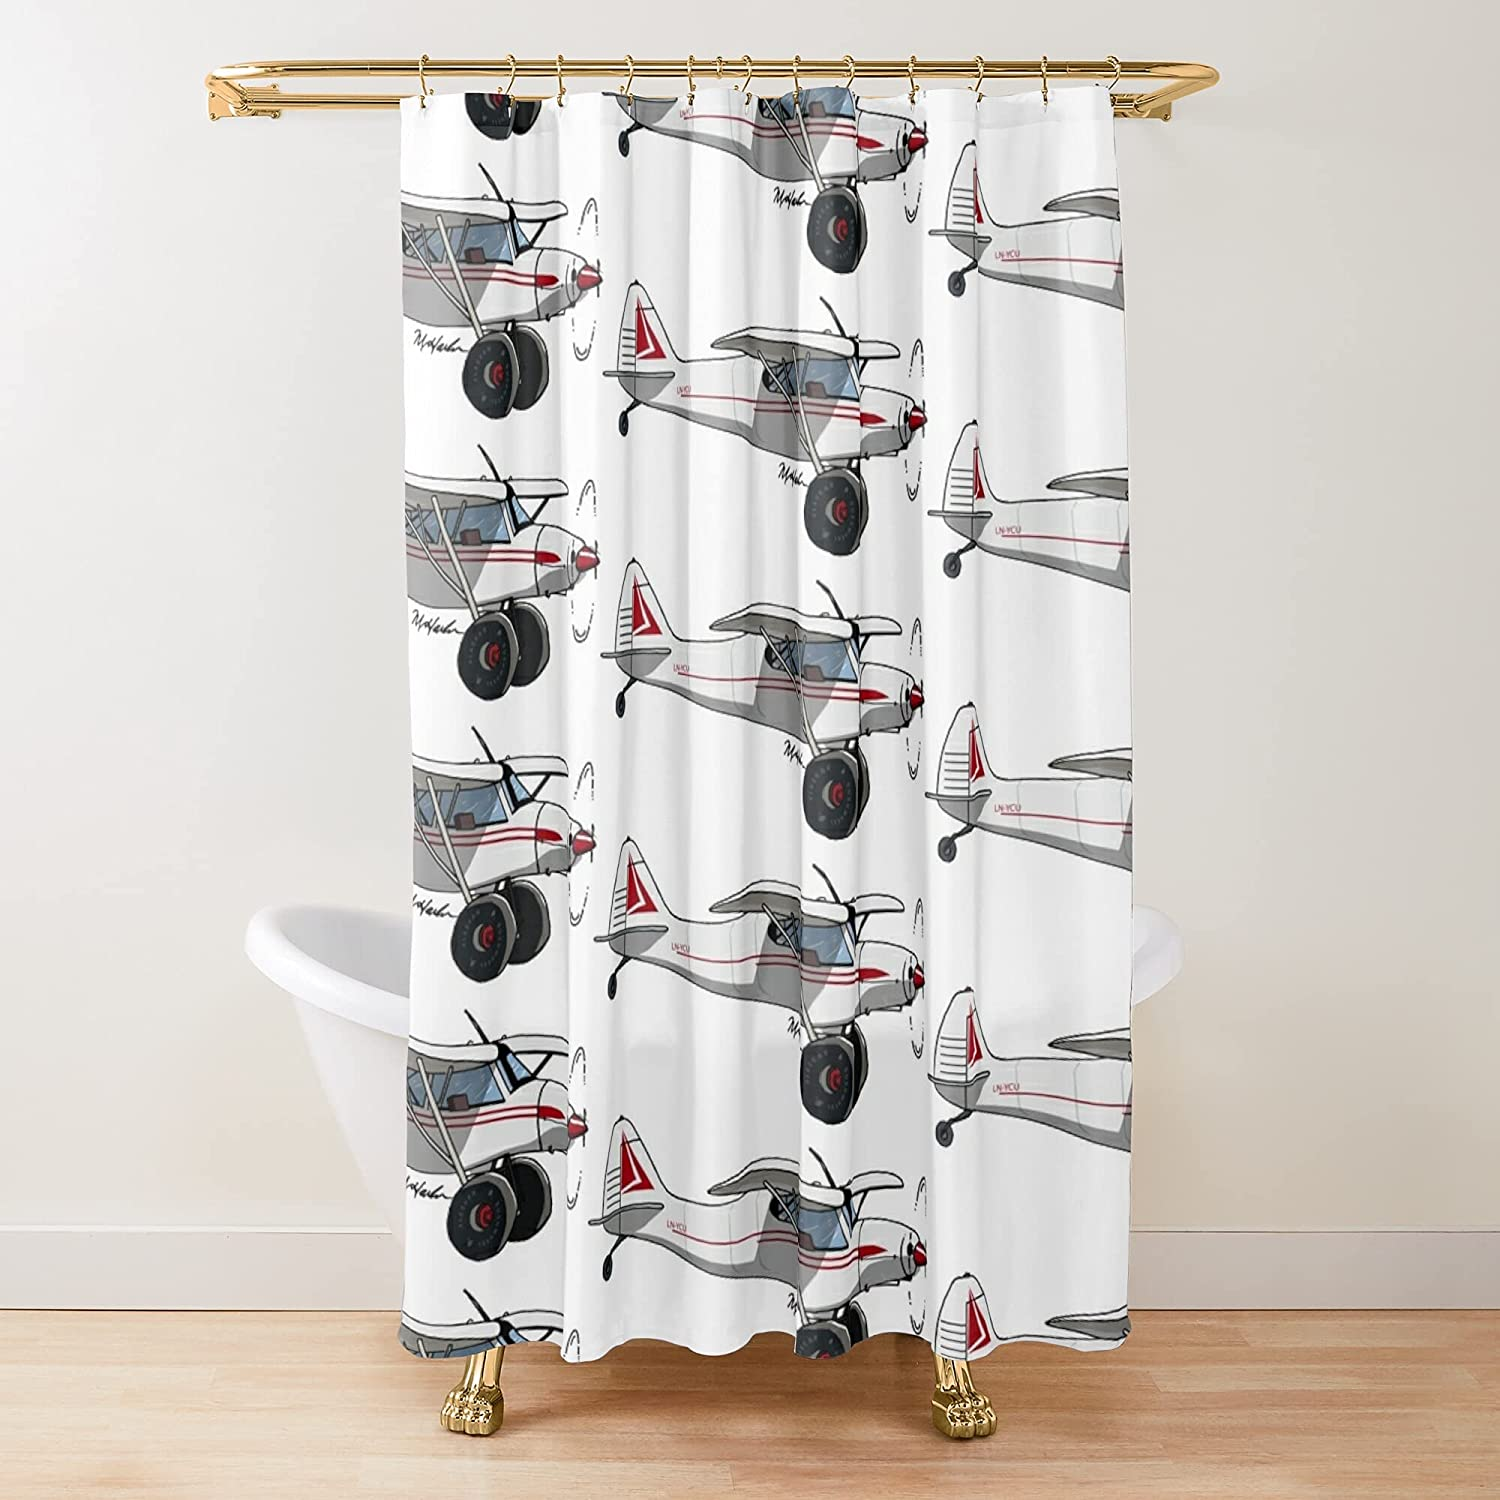 Savage Classic Zlin Aviation Lc Prin Ycu Curtains Purchase Outlet ☆ Free Shipping Fabric Shower